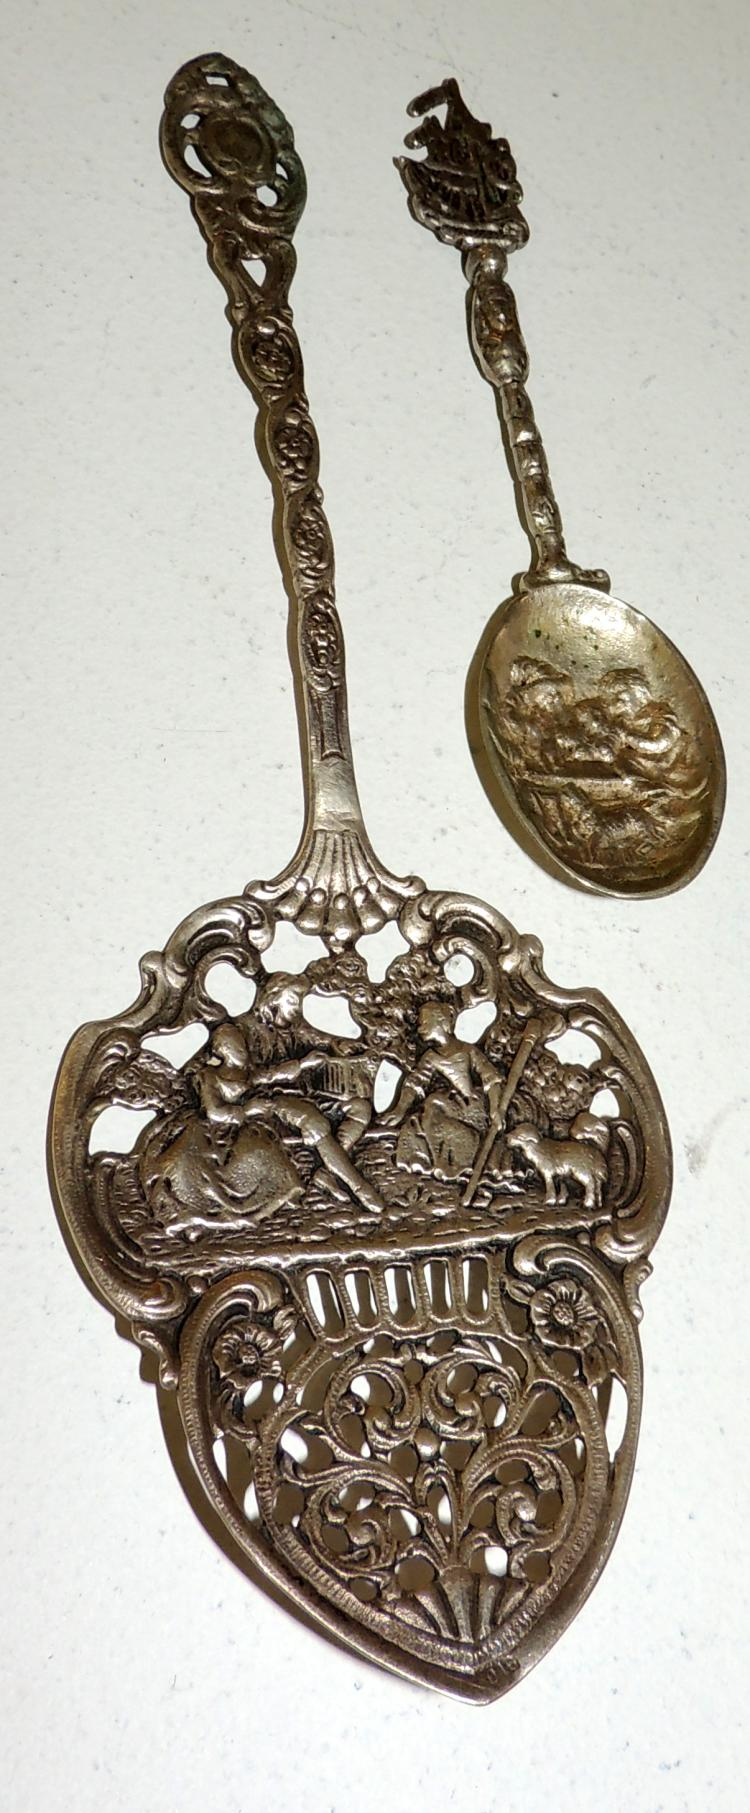 TWO CENTRAL EUROPEAN SPOONS OF SERVICE of the first quarter S.XX, in silver with contrasts. Larger length: 20 cm.